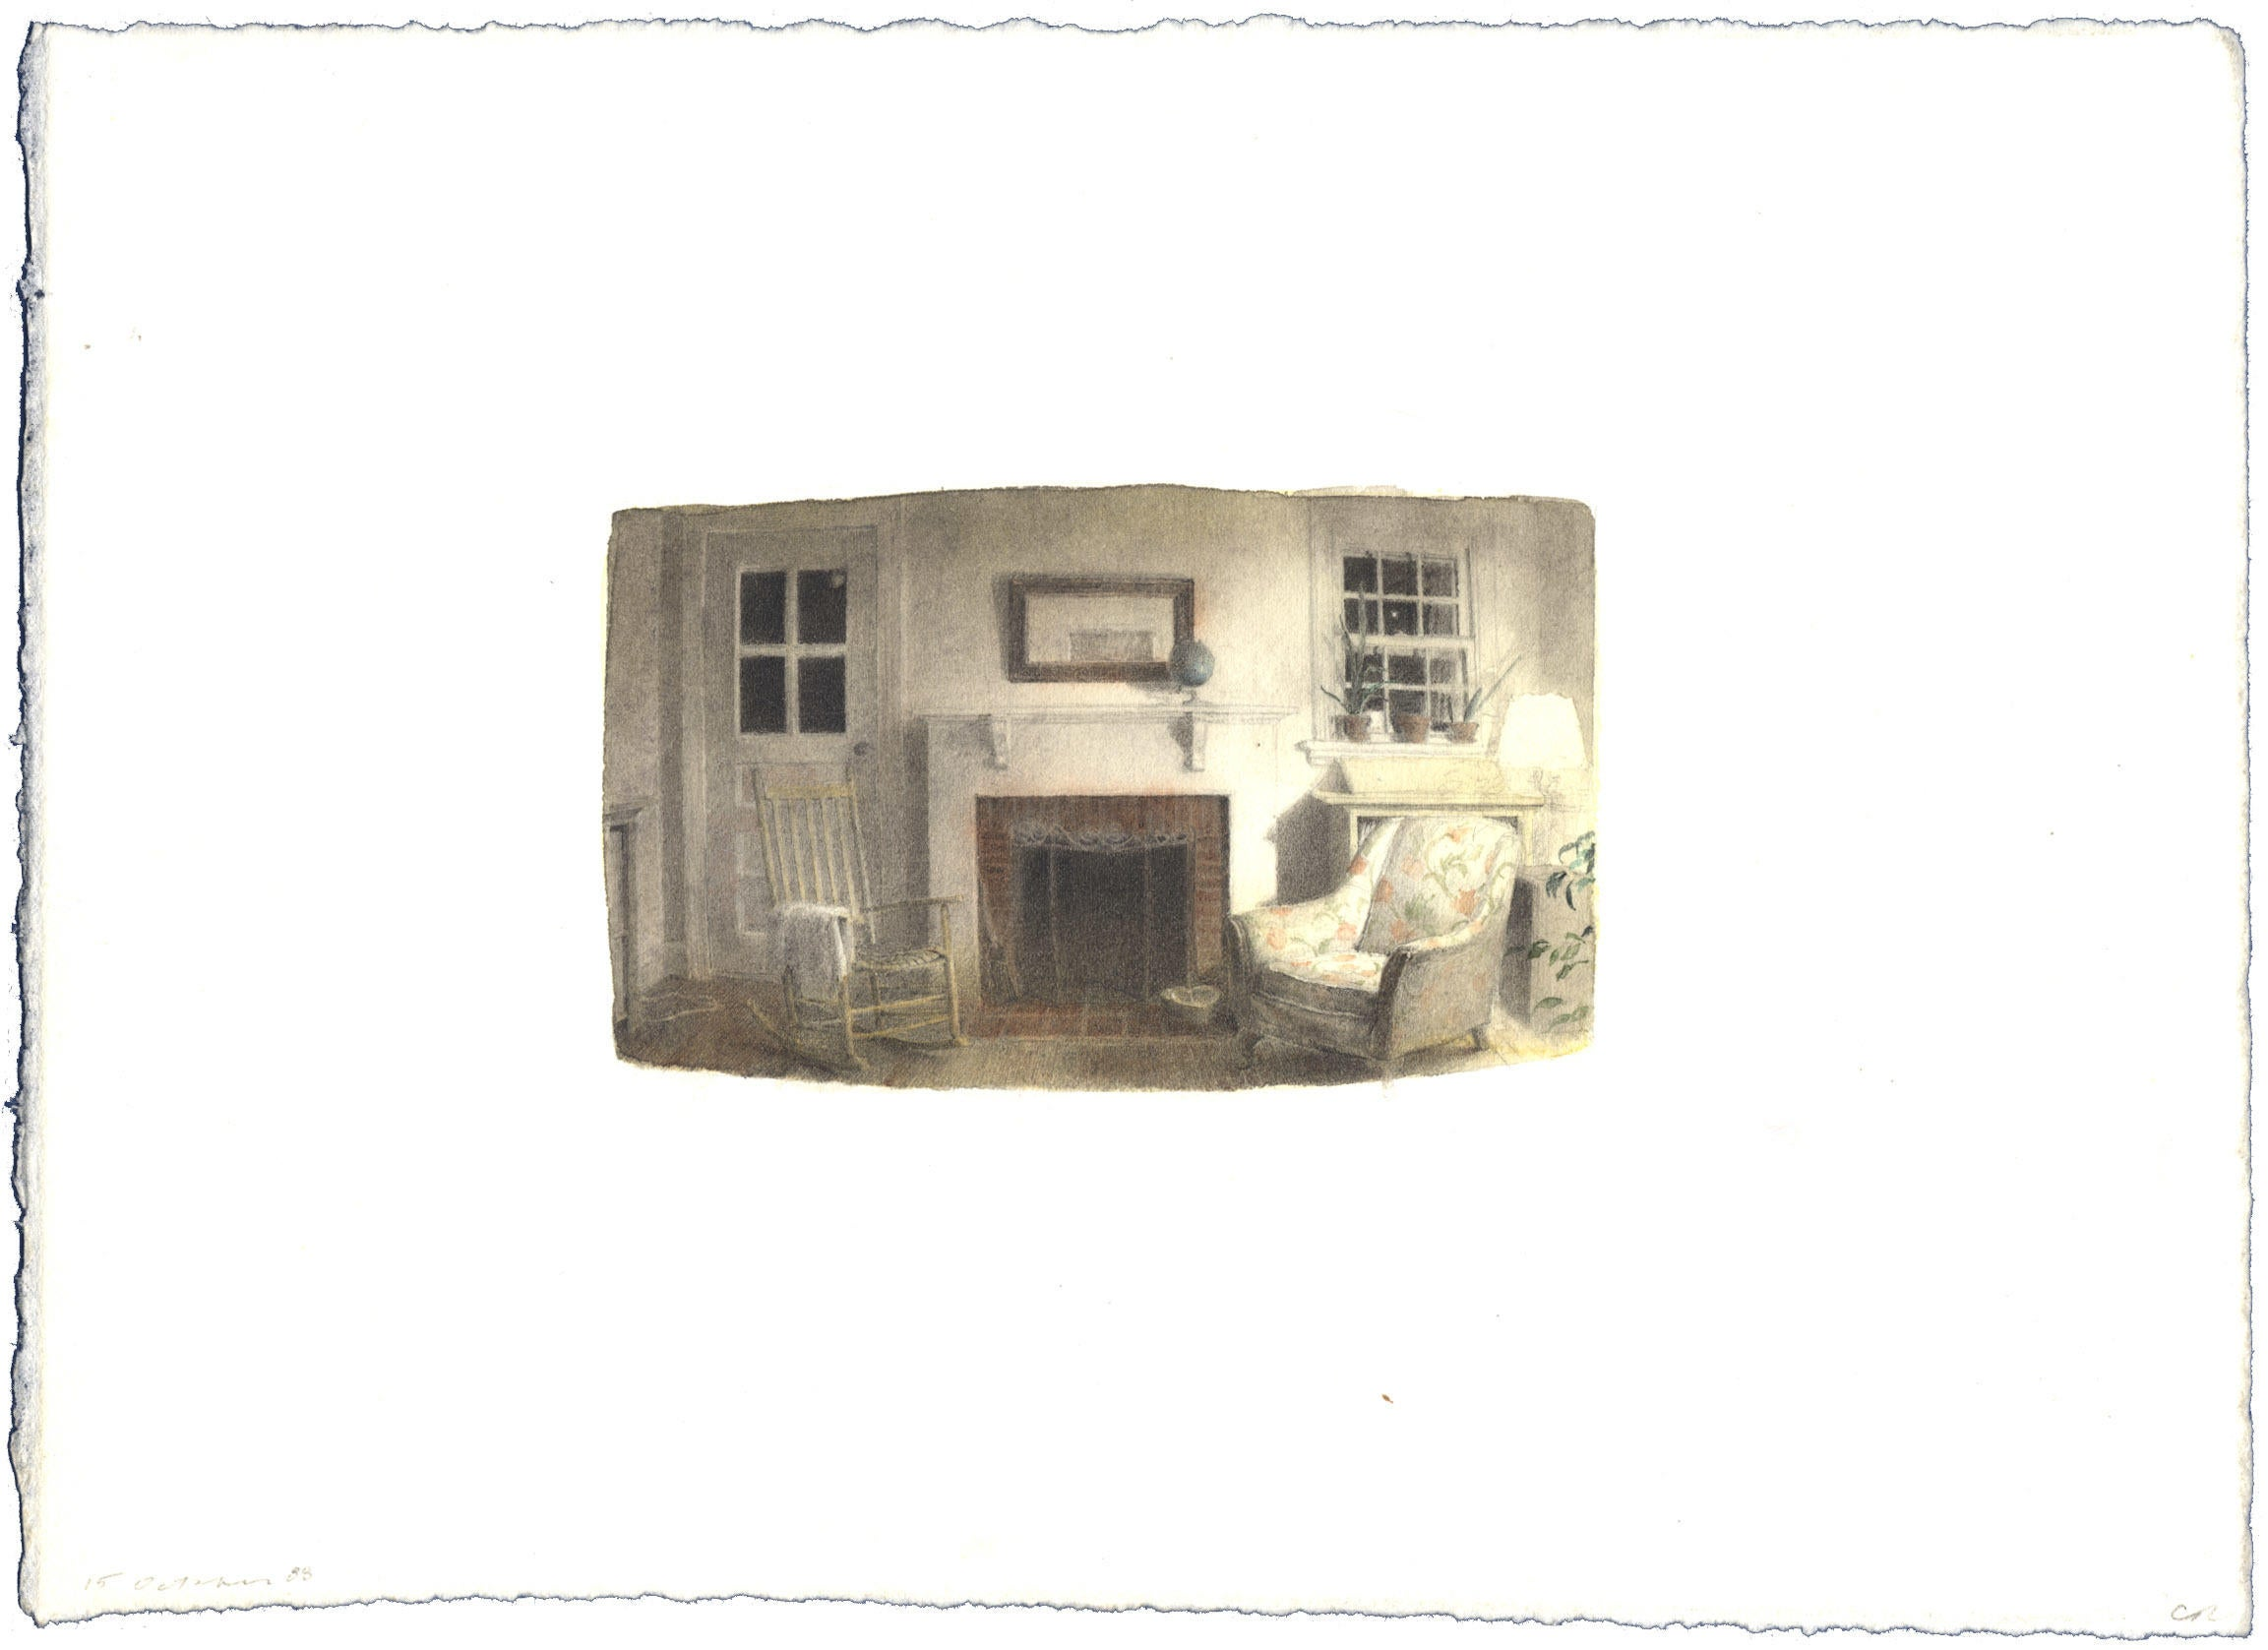 Night Interior: Watercolor image